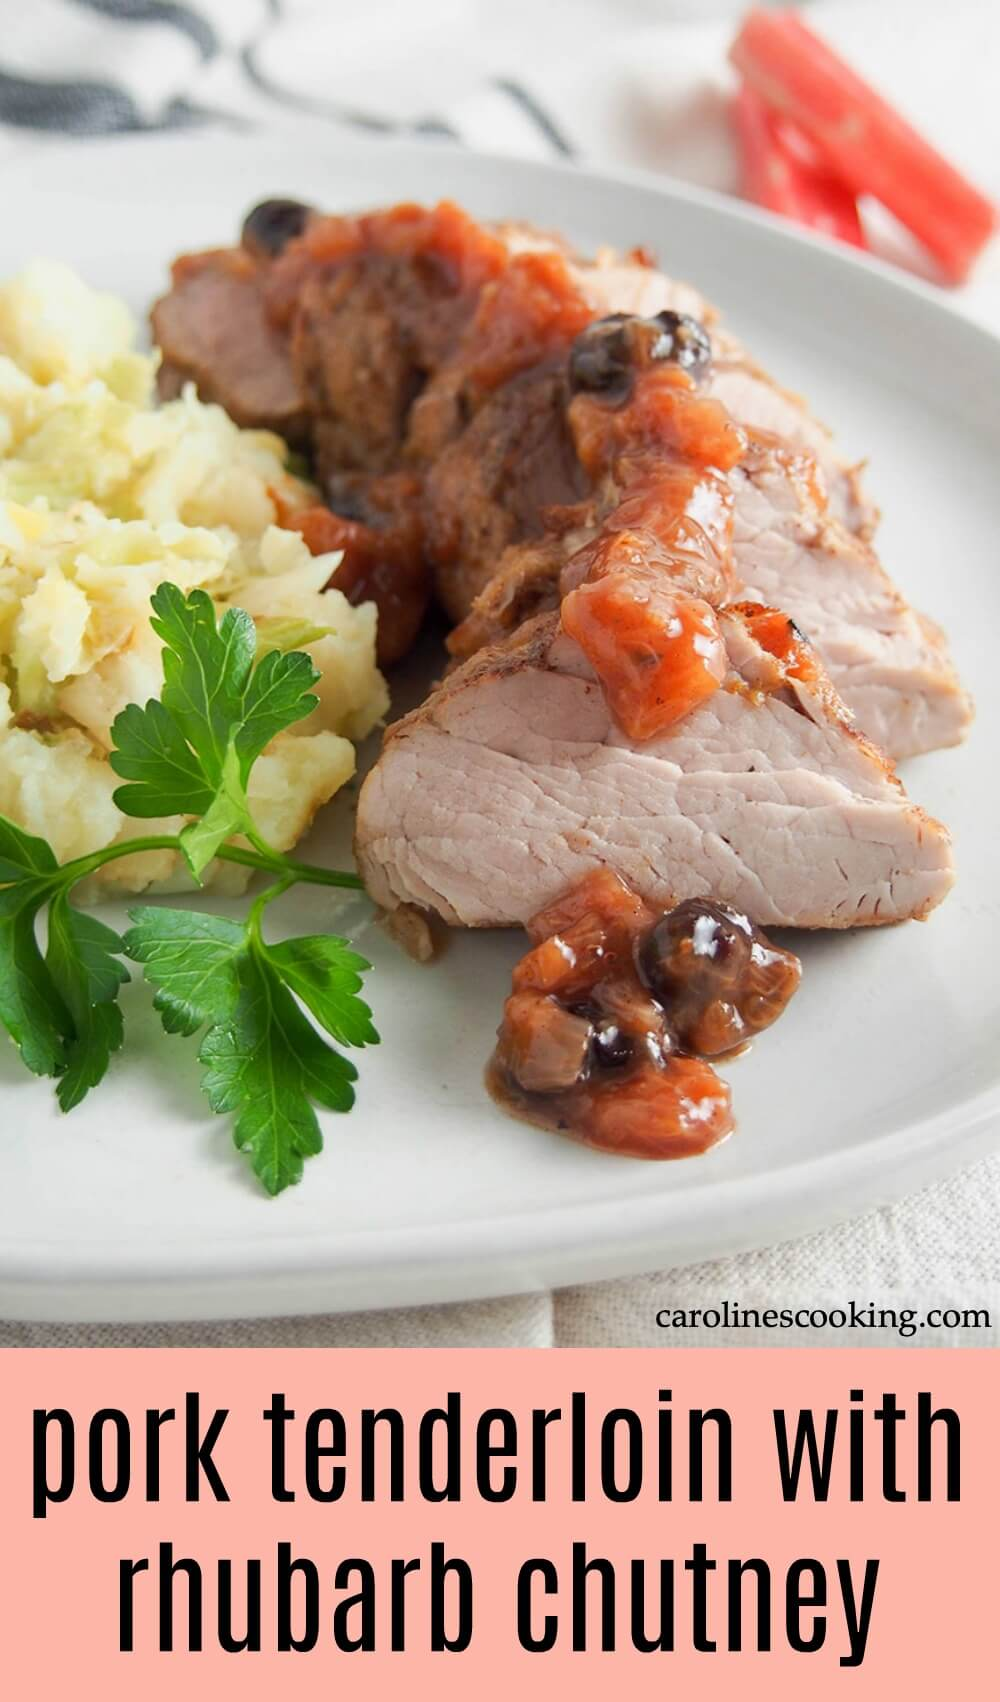 This pork tenderloin with rhubarb chutney is an elegant and easy meal. The delicious sweet-savory flavors of the chutney pair perfectly with tender pork for a quick main, perfect any night. #pork #rhubarb #roastpork #porktenderloin